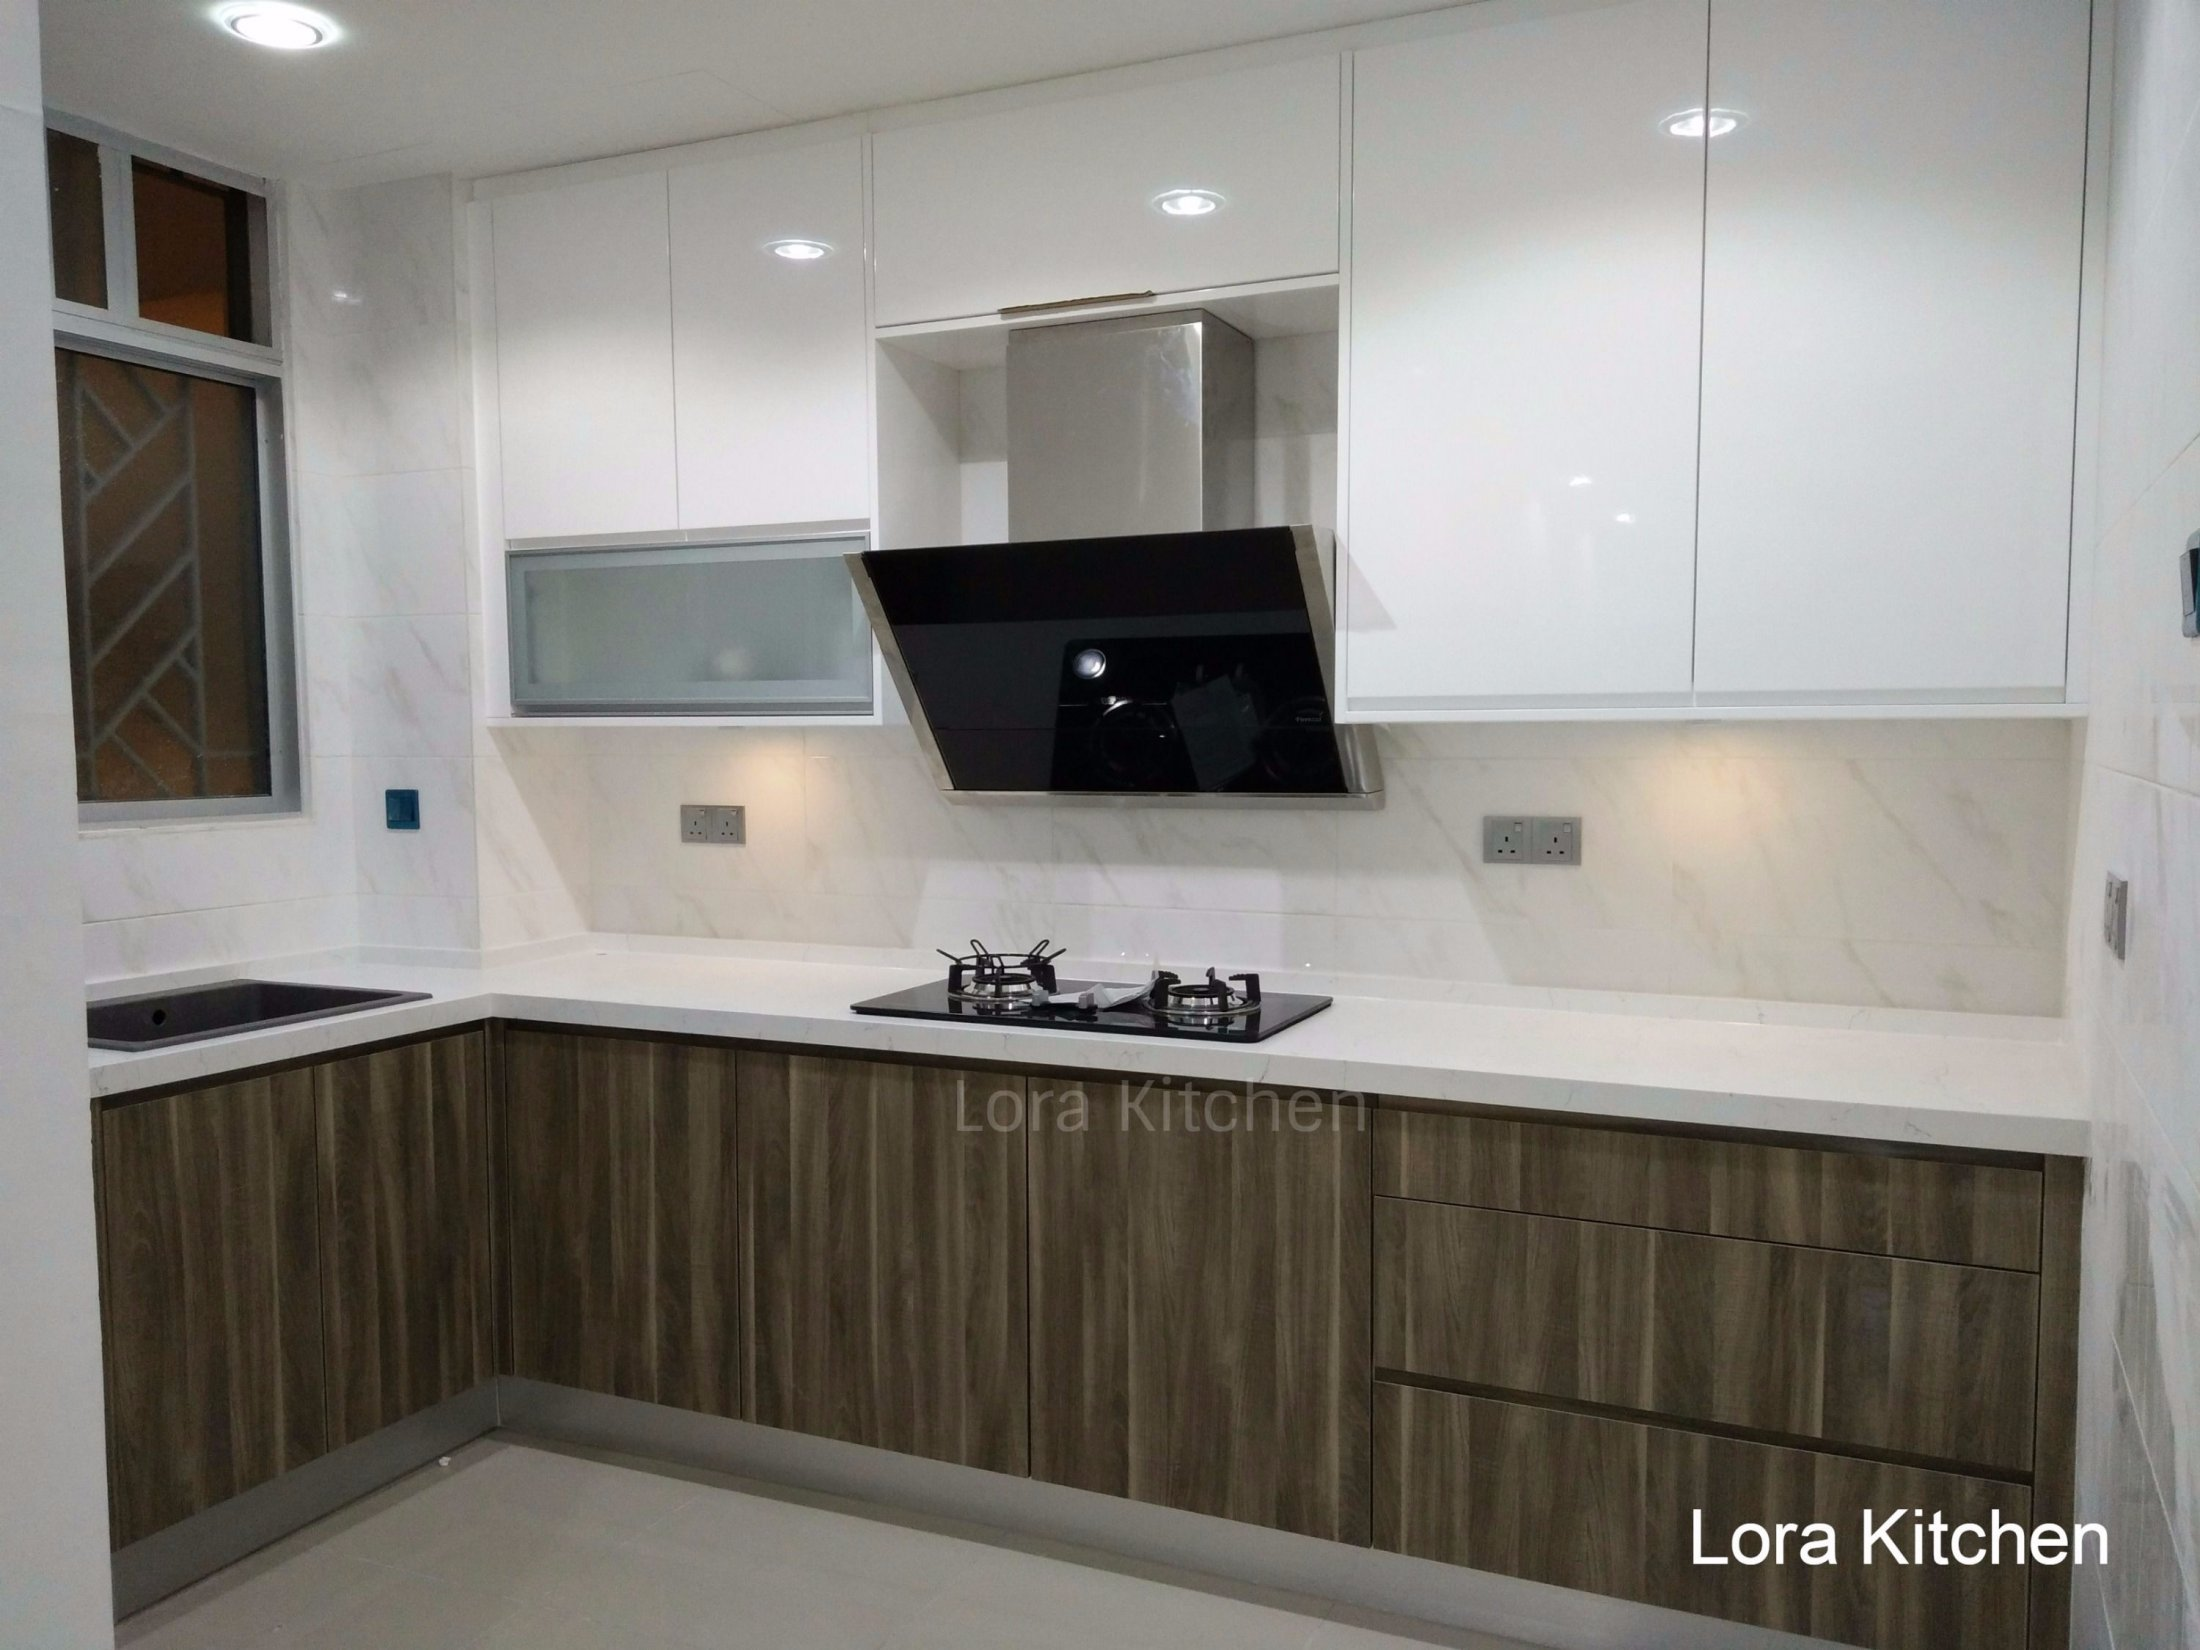 Lora Kitchen Design